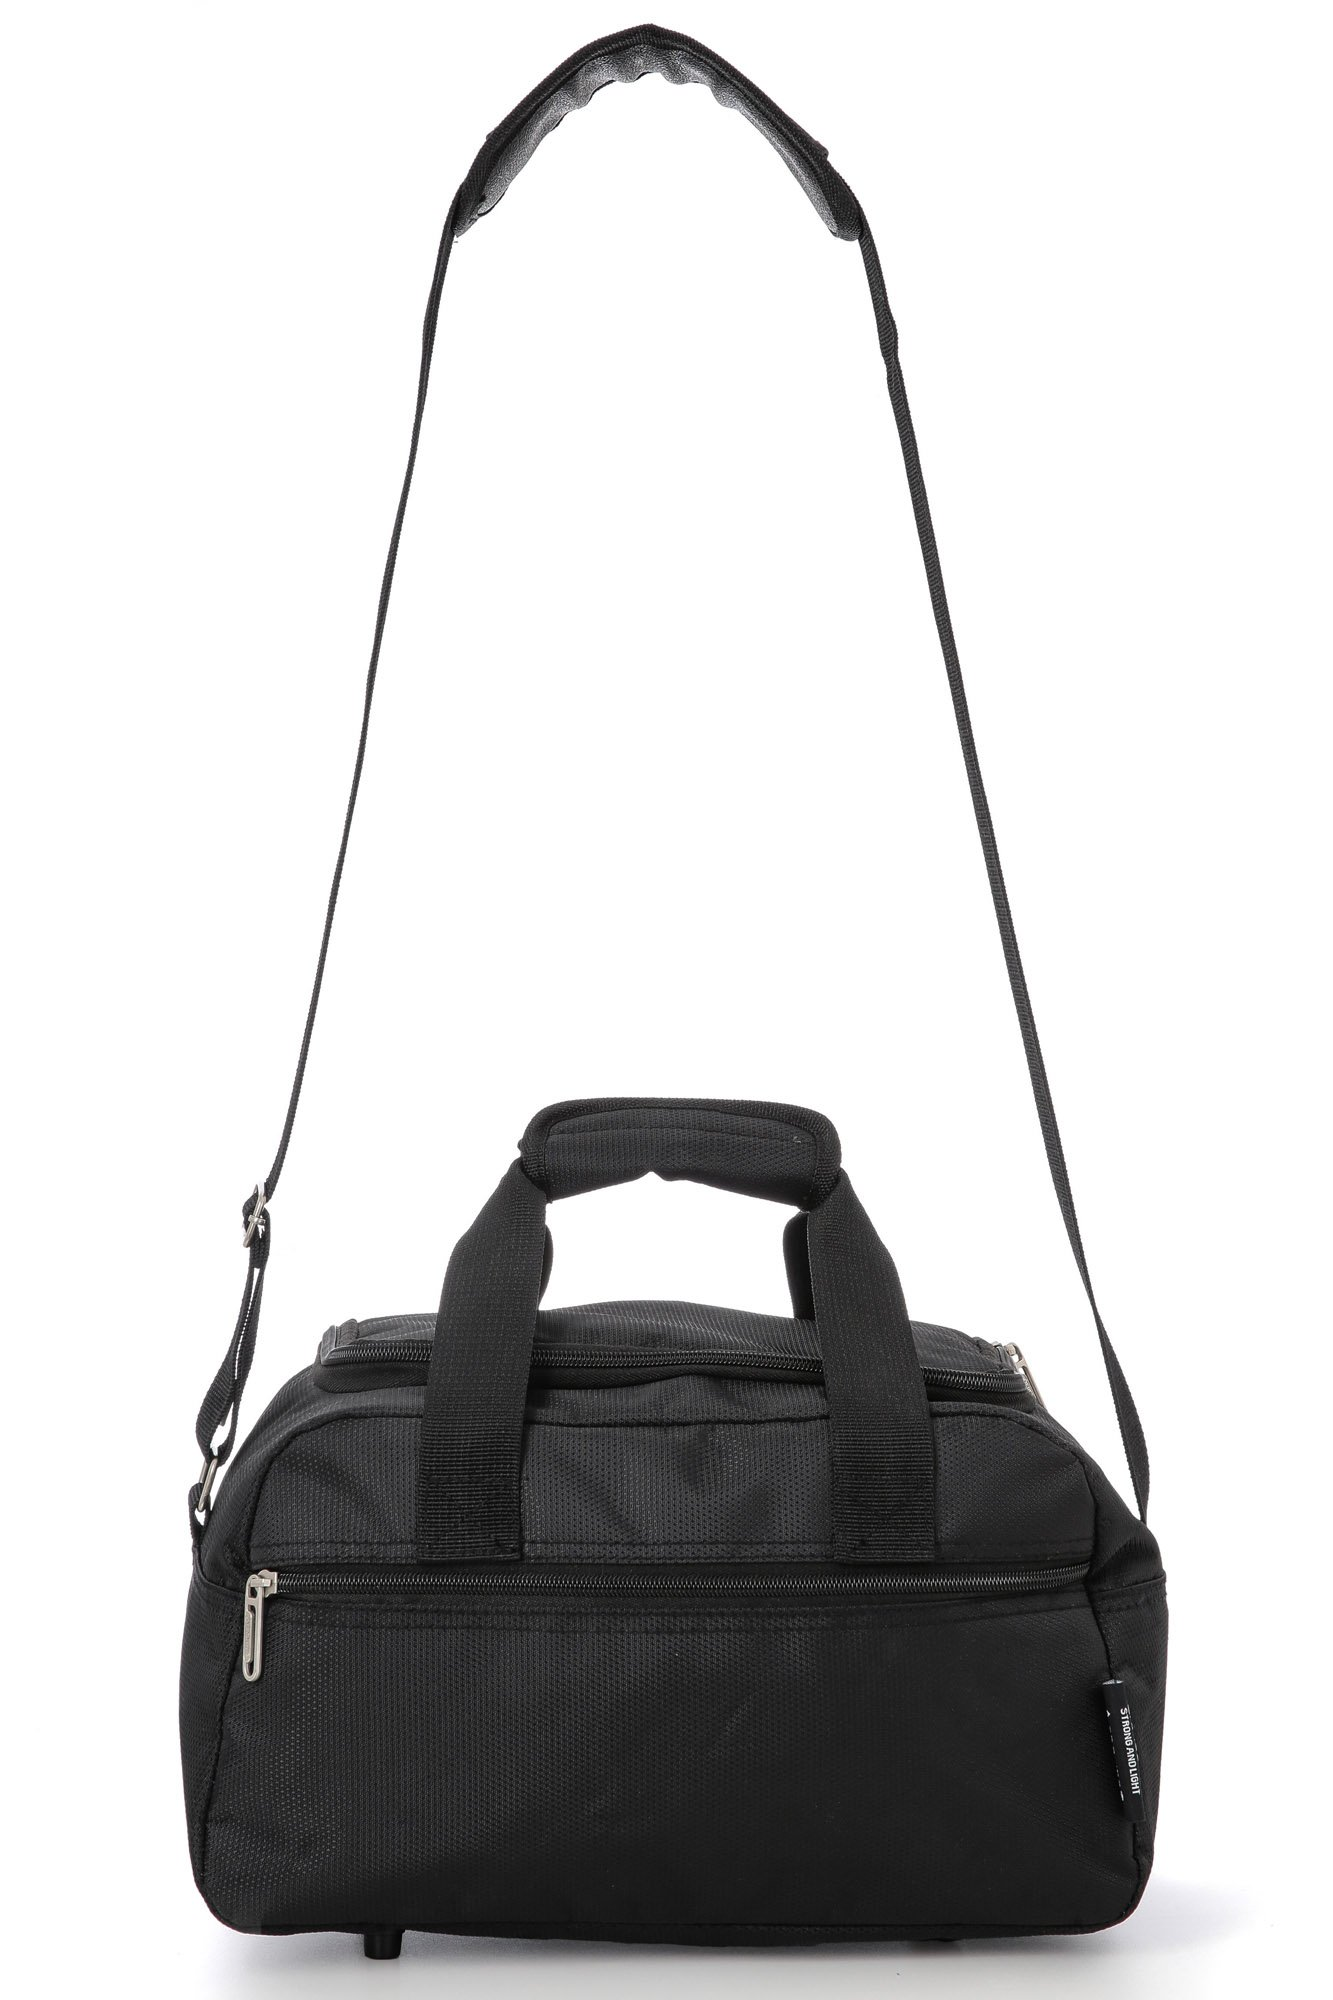 71y3isx5KnL - Aerolite Holdall Maximum Ryanair Hand Luggage Cabin Sized Flight Shoulder Bag Equipaje de Mano, 35 cm, 14 Liters, Negro…